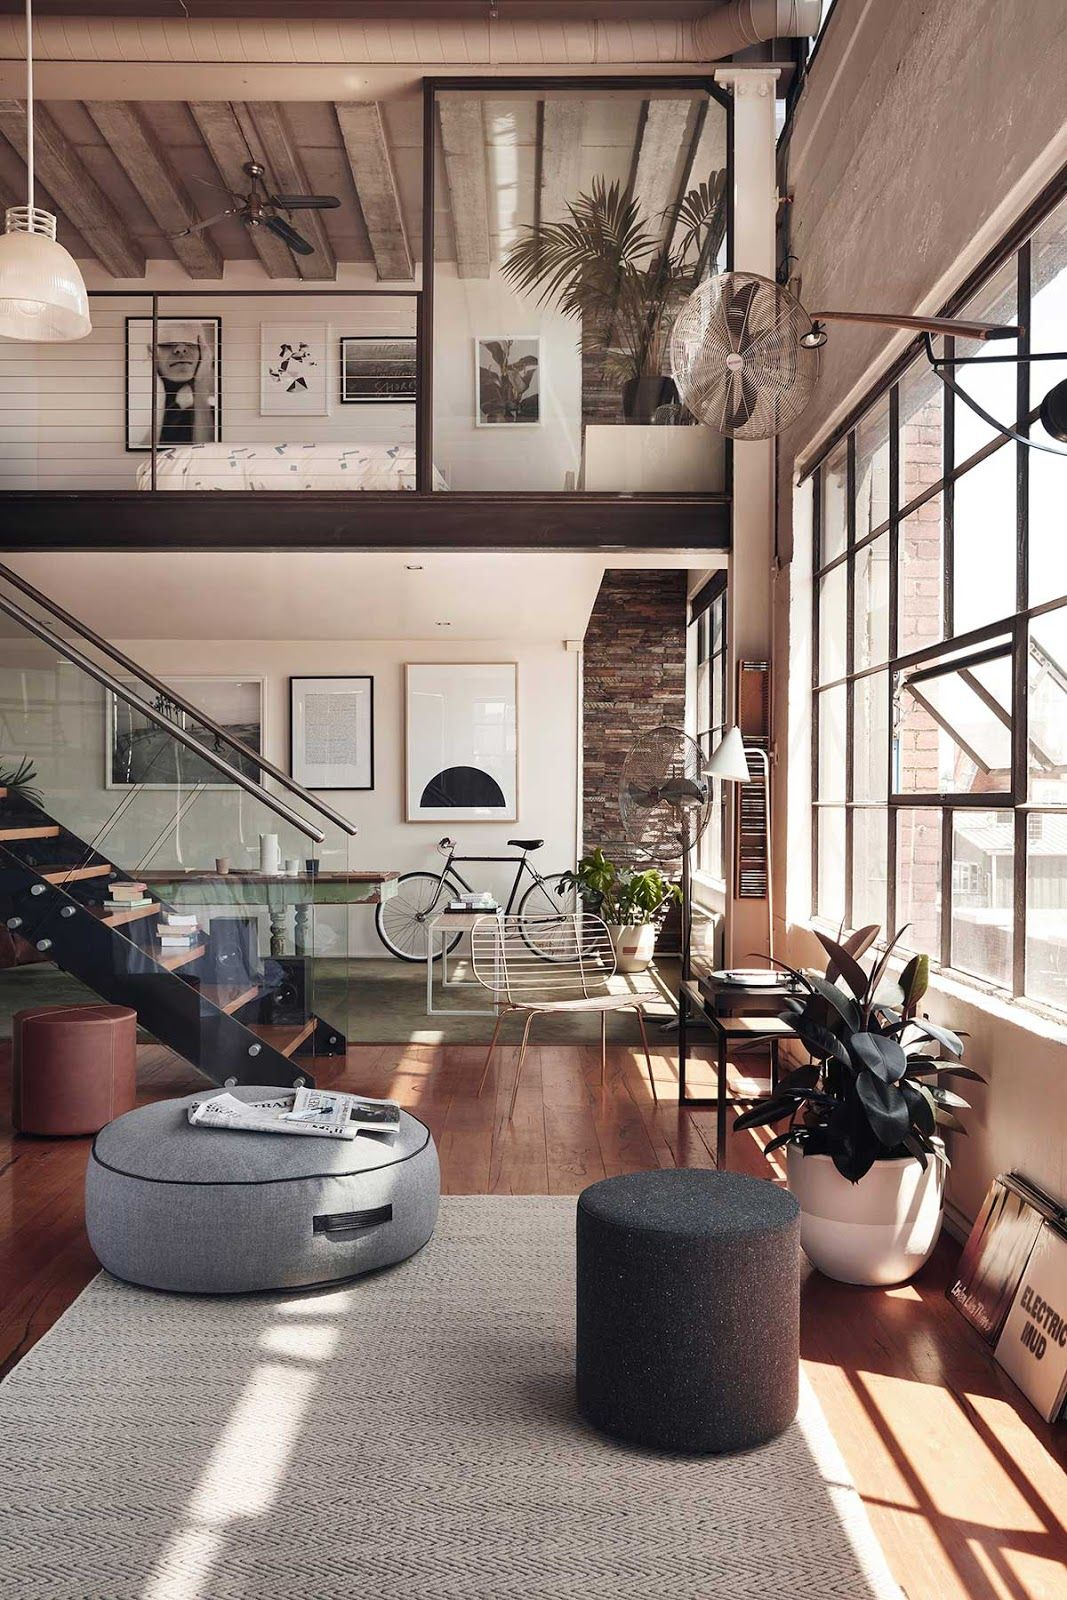 Dreamy Industrial Loft Come On In Daily Dream Decor Interior